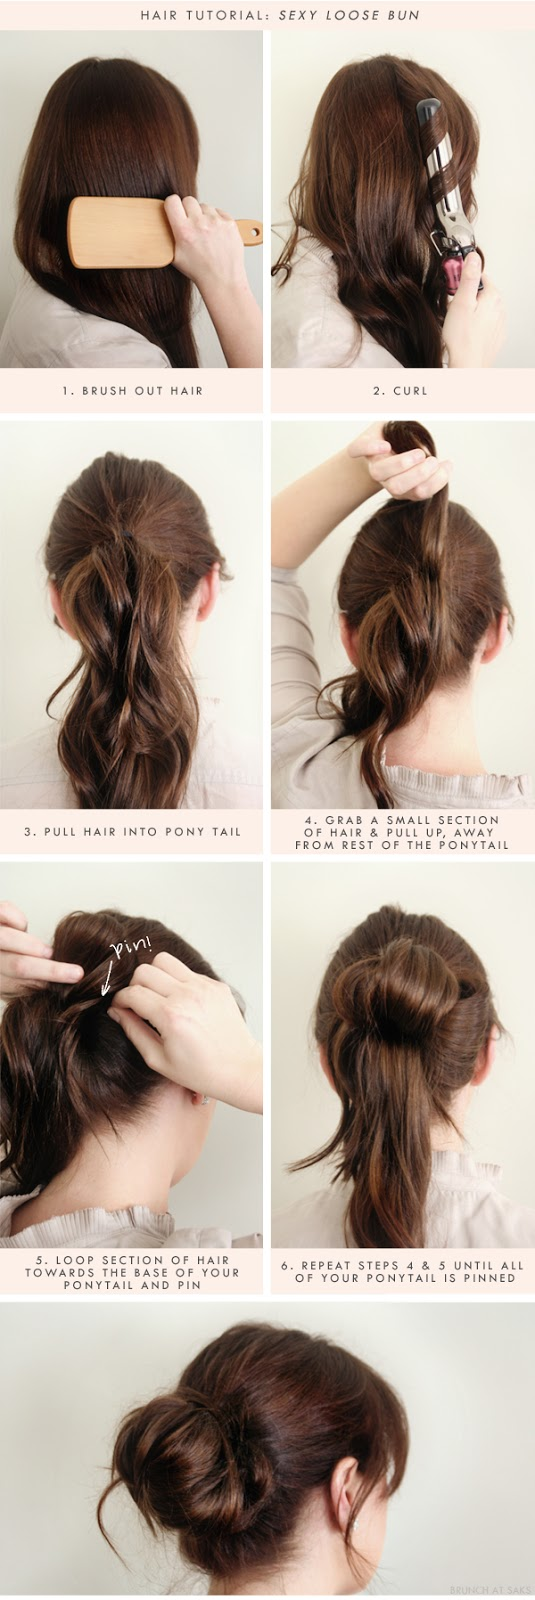 Superb Top 25 Messy Hair Bun Tutorials Perfect For Those Lazy Mornings Hairstyles For Men Maxibearus